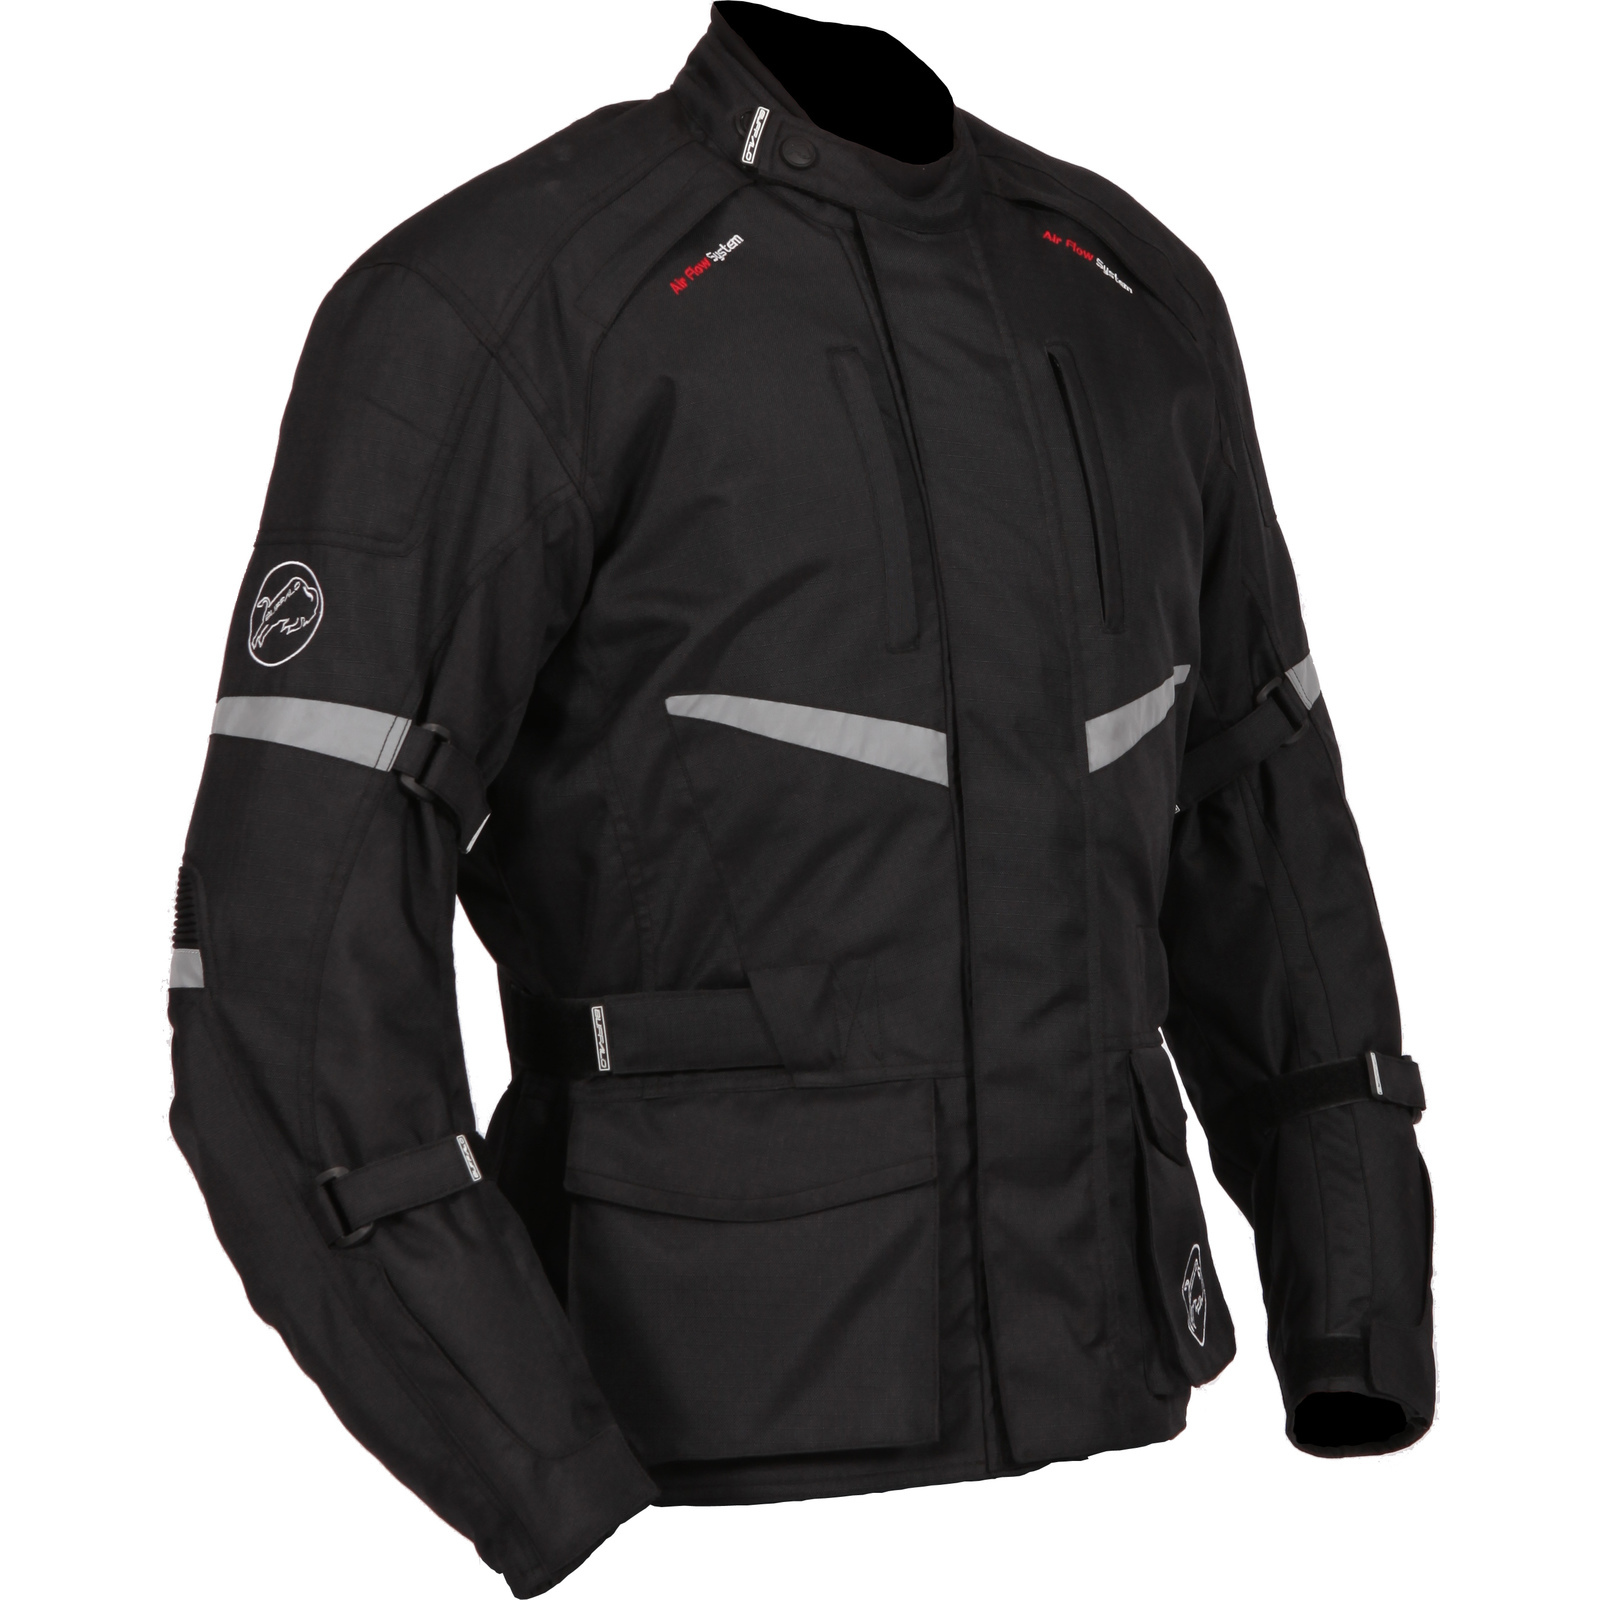 Buffalo Alpine Textile Ladies Motorcycle Jacket Womens Waterproof Adventure Bike Preview 2